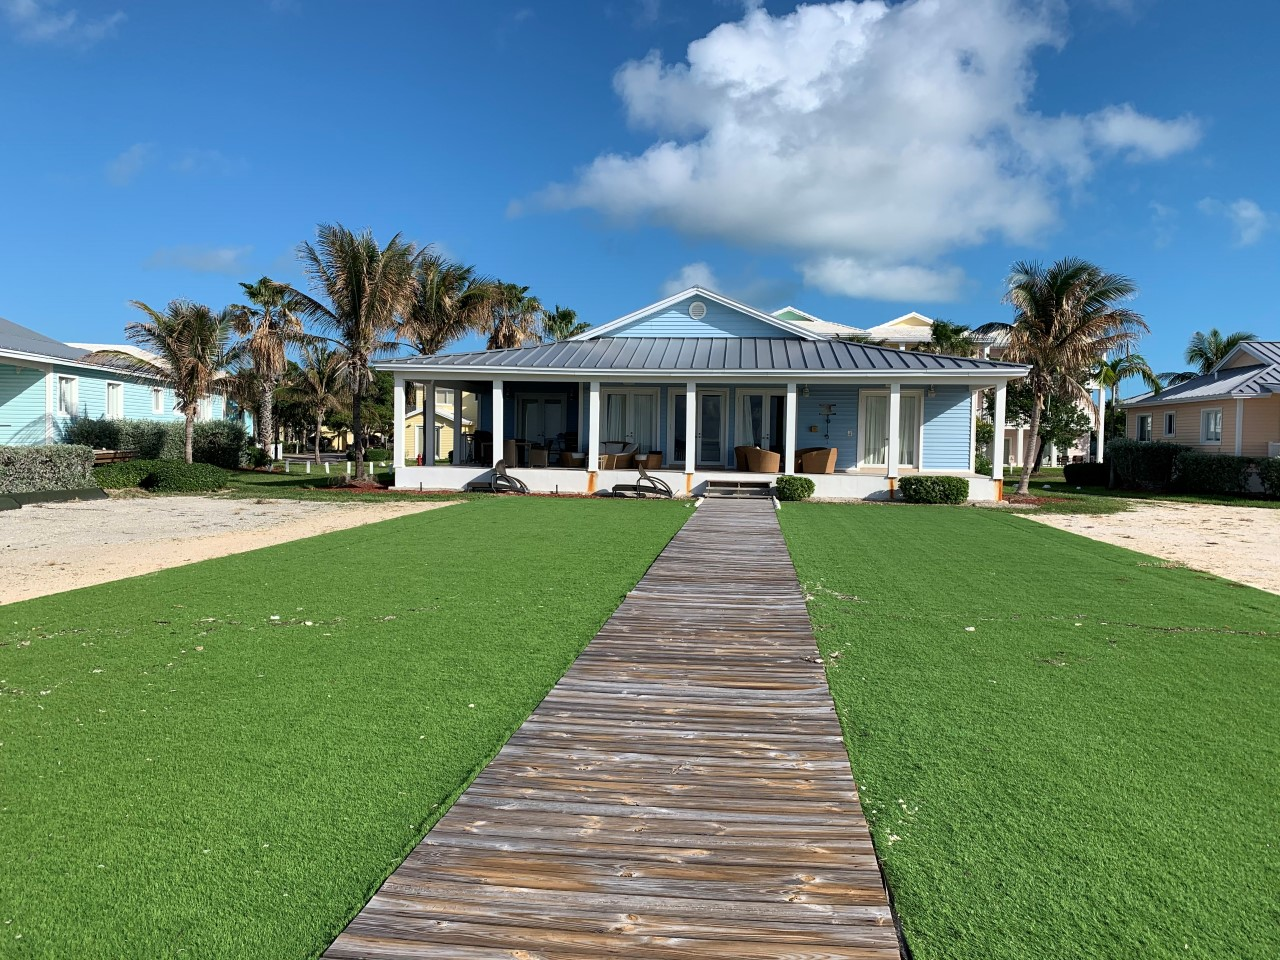 Bimini Bay Beachfront Home